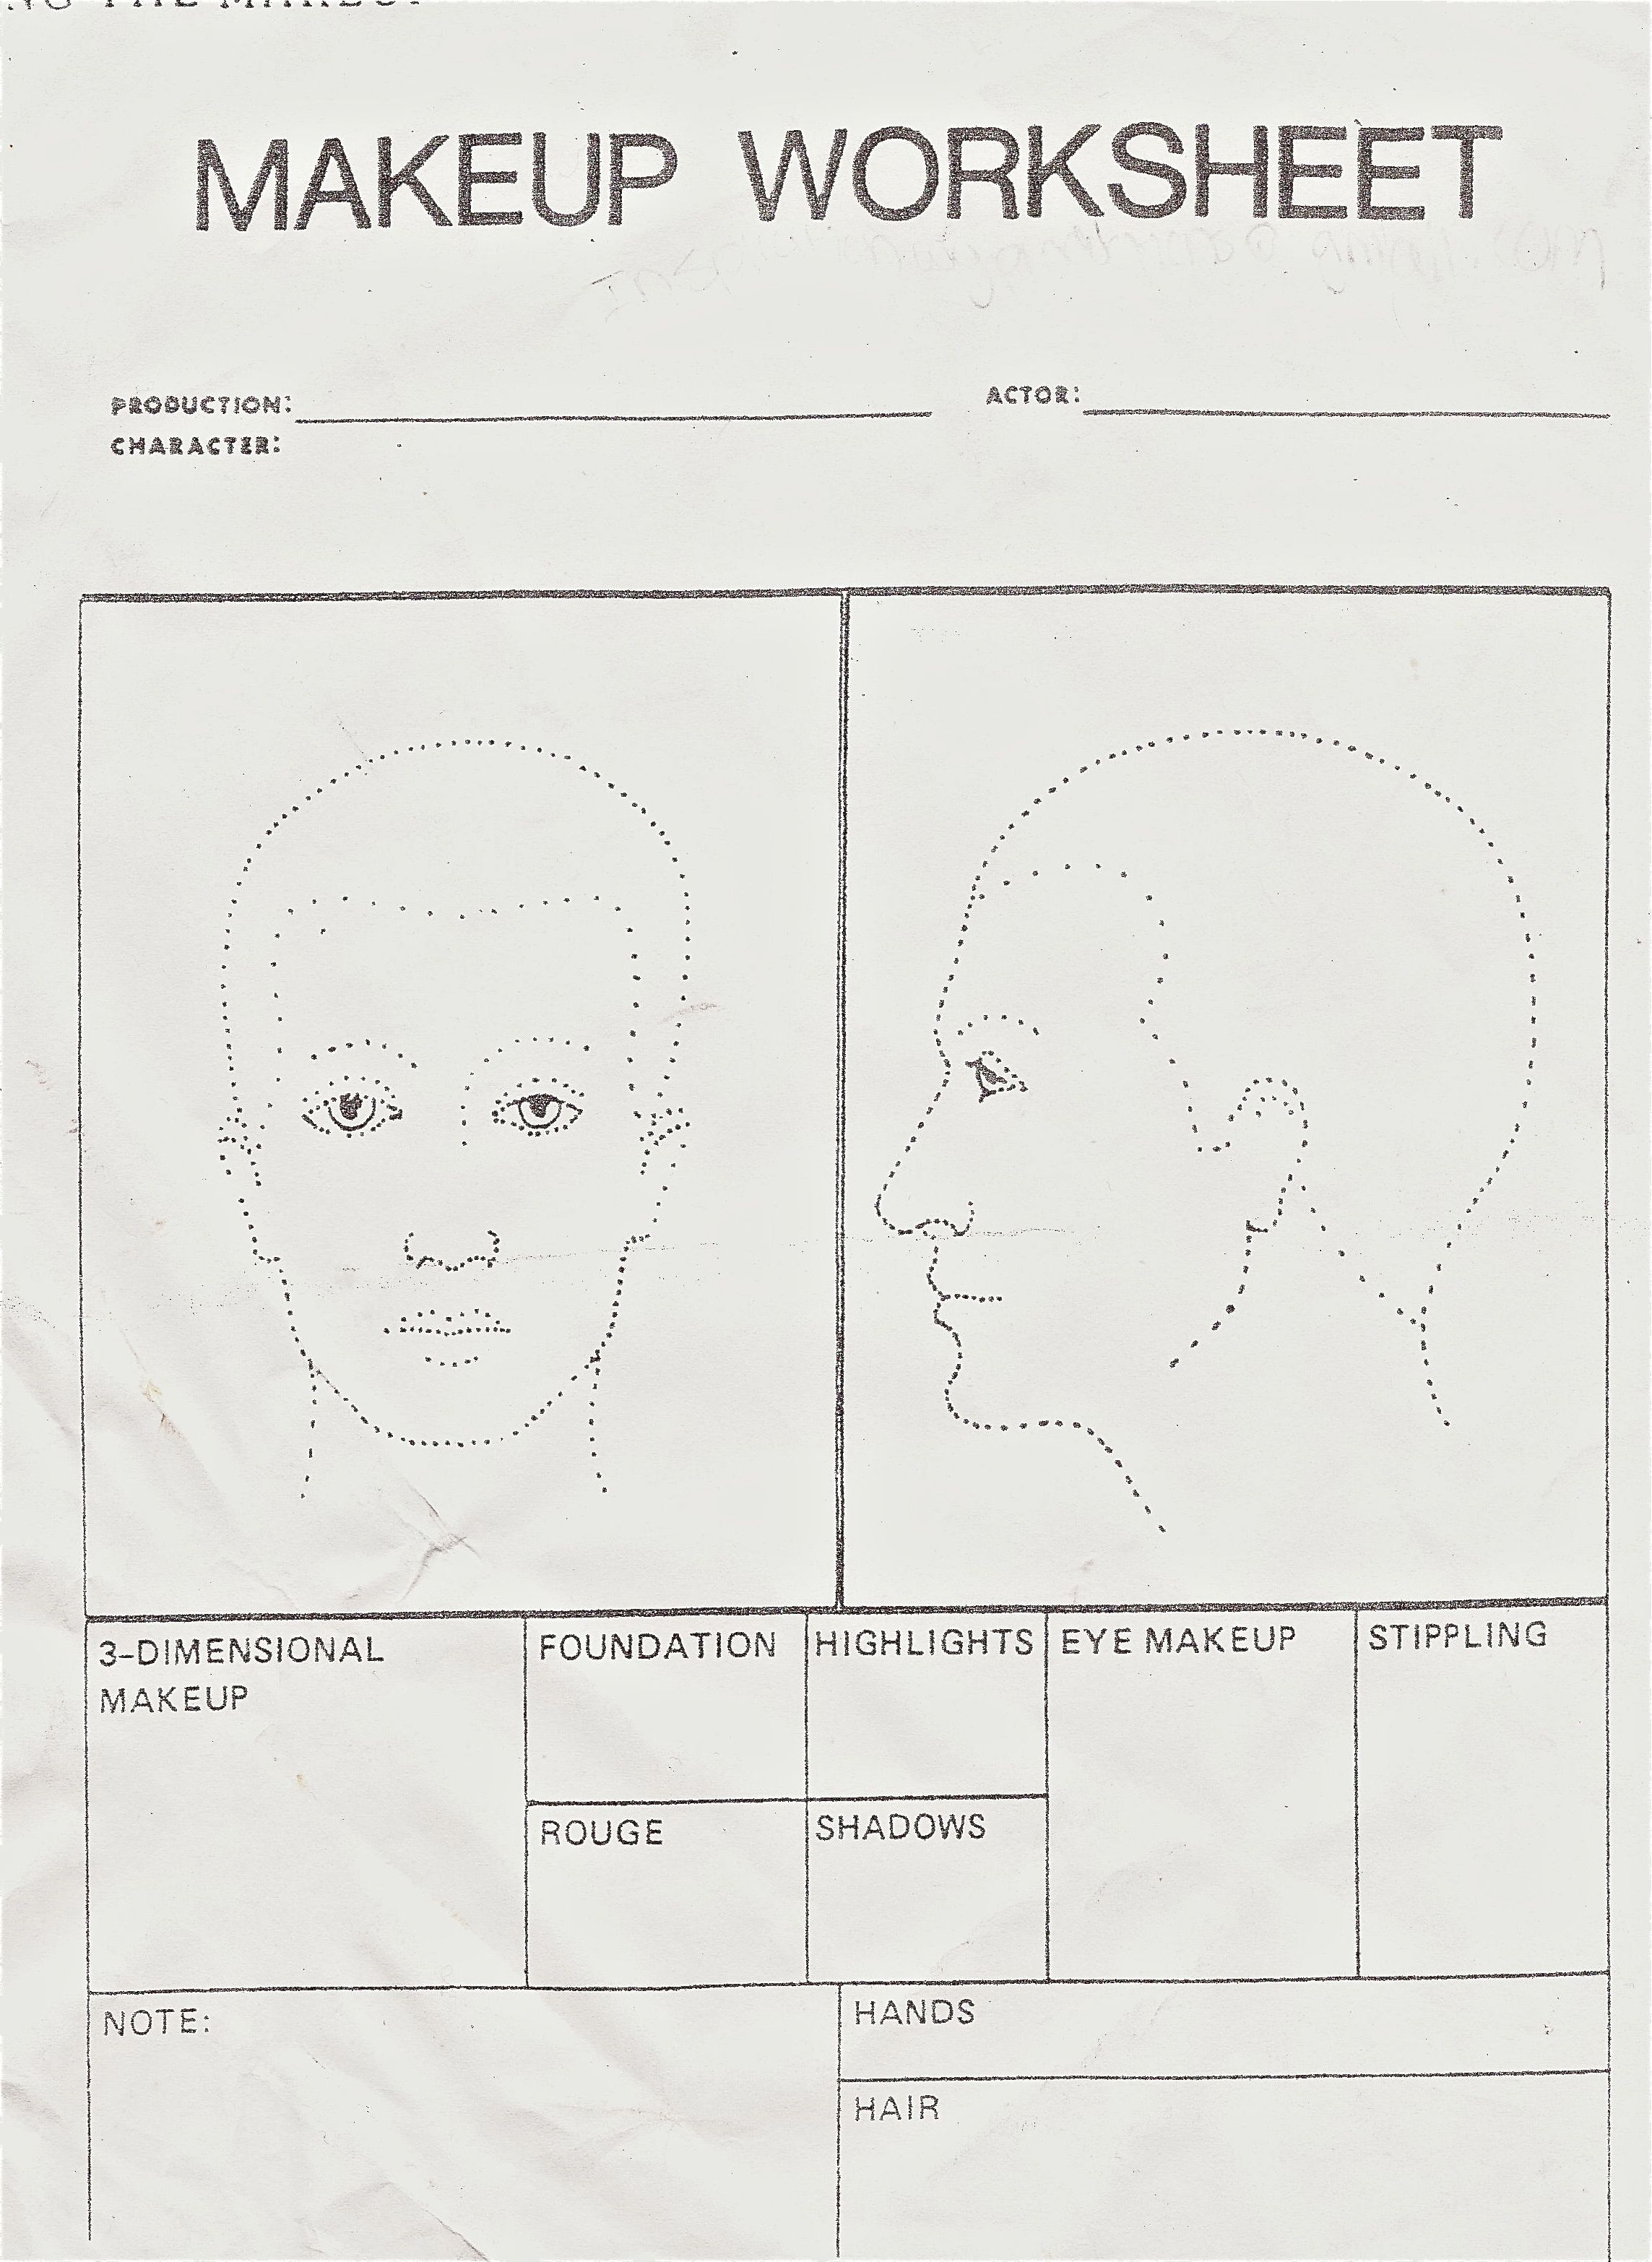 Makeup Worksheet